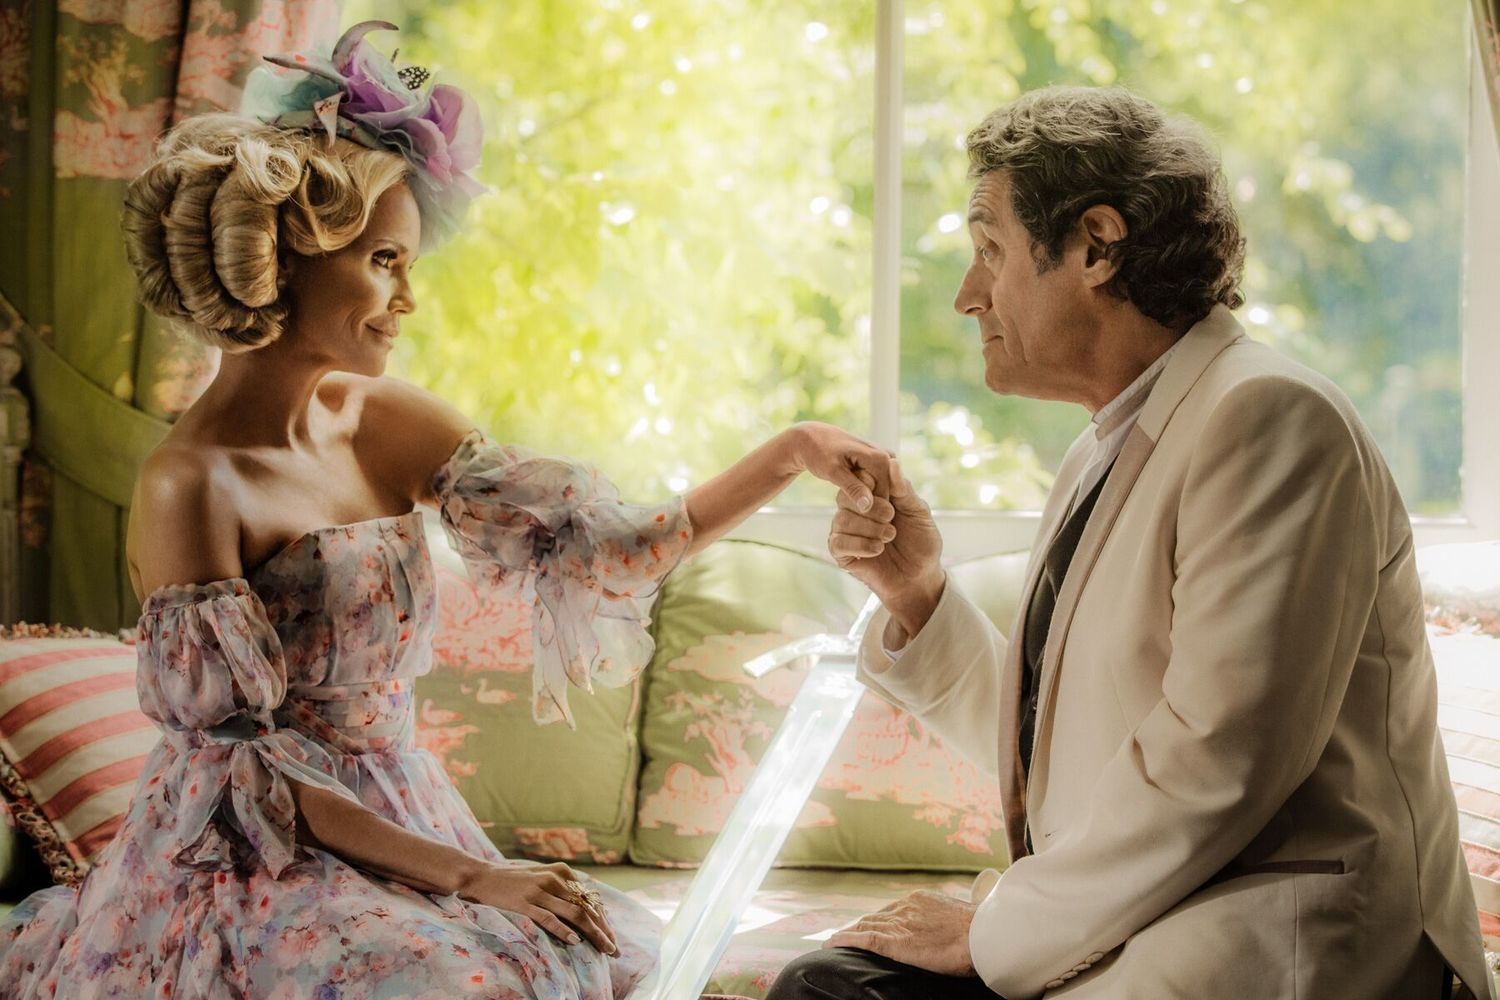 Kristin chenoweth %28easter%29  ian mcshane %28mr. wednesday%29